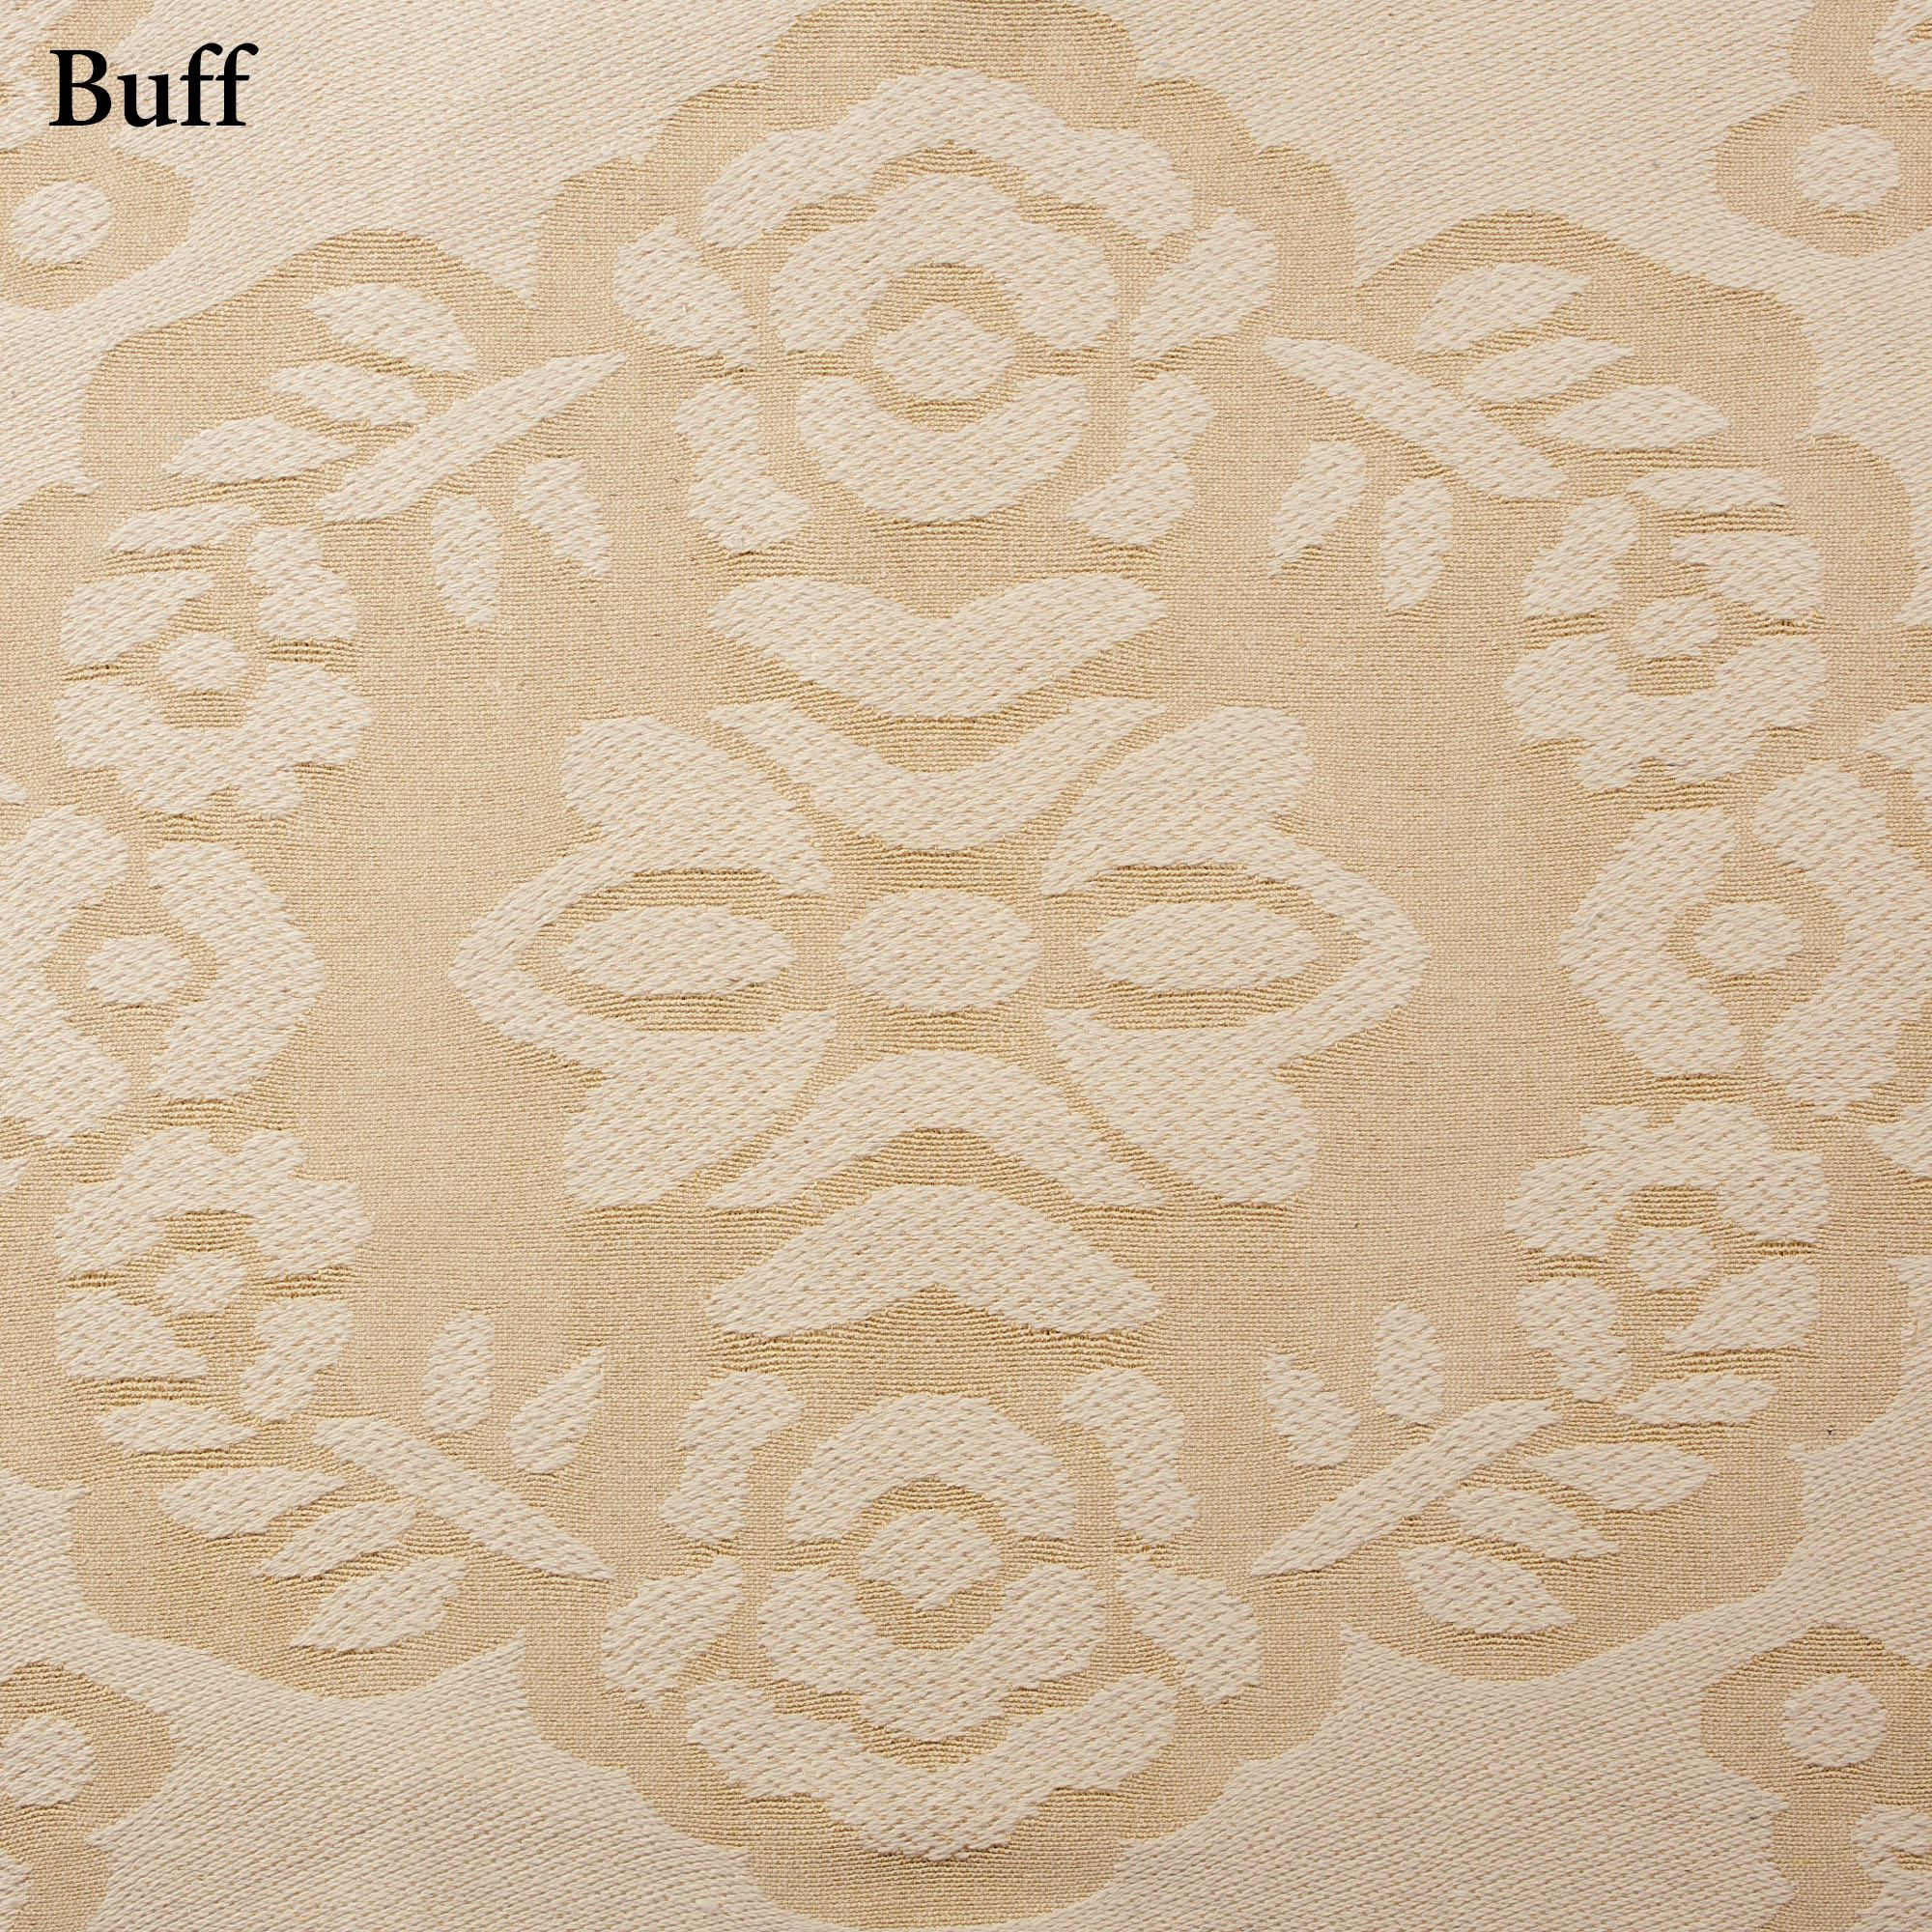 Concord Fringed Woven Bedspread Bedding